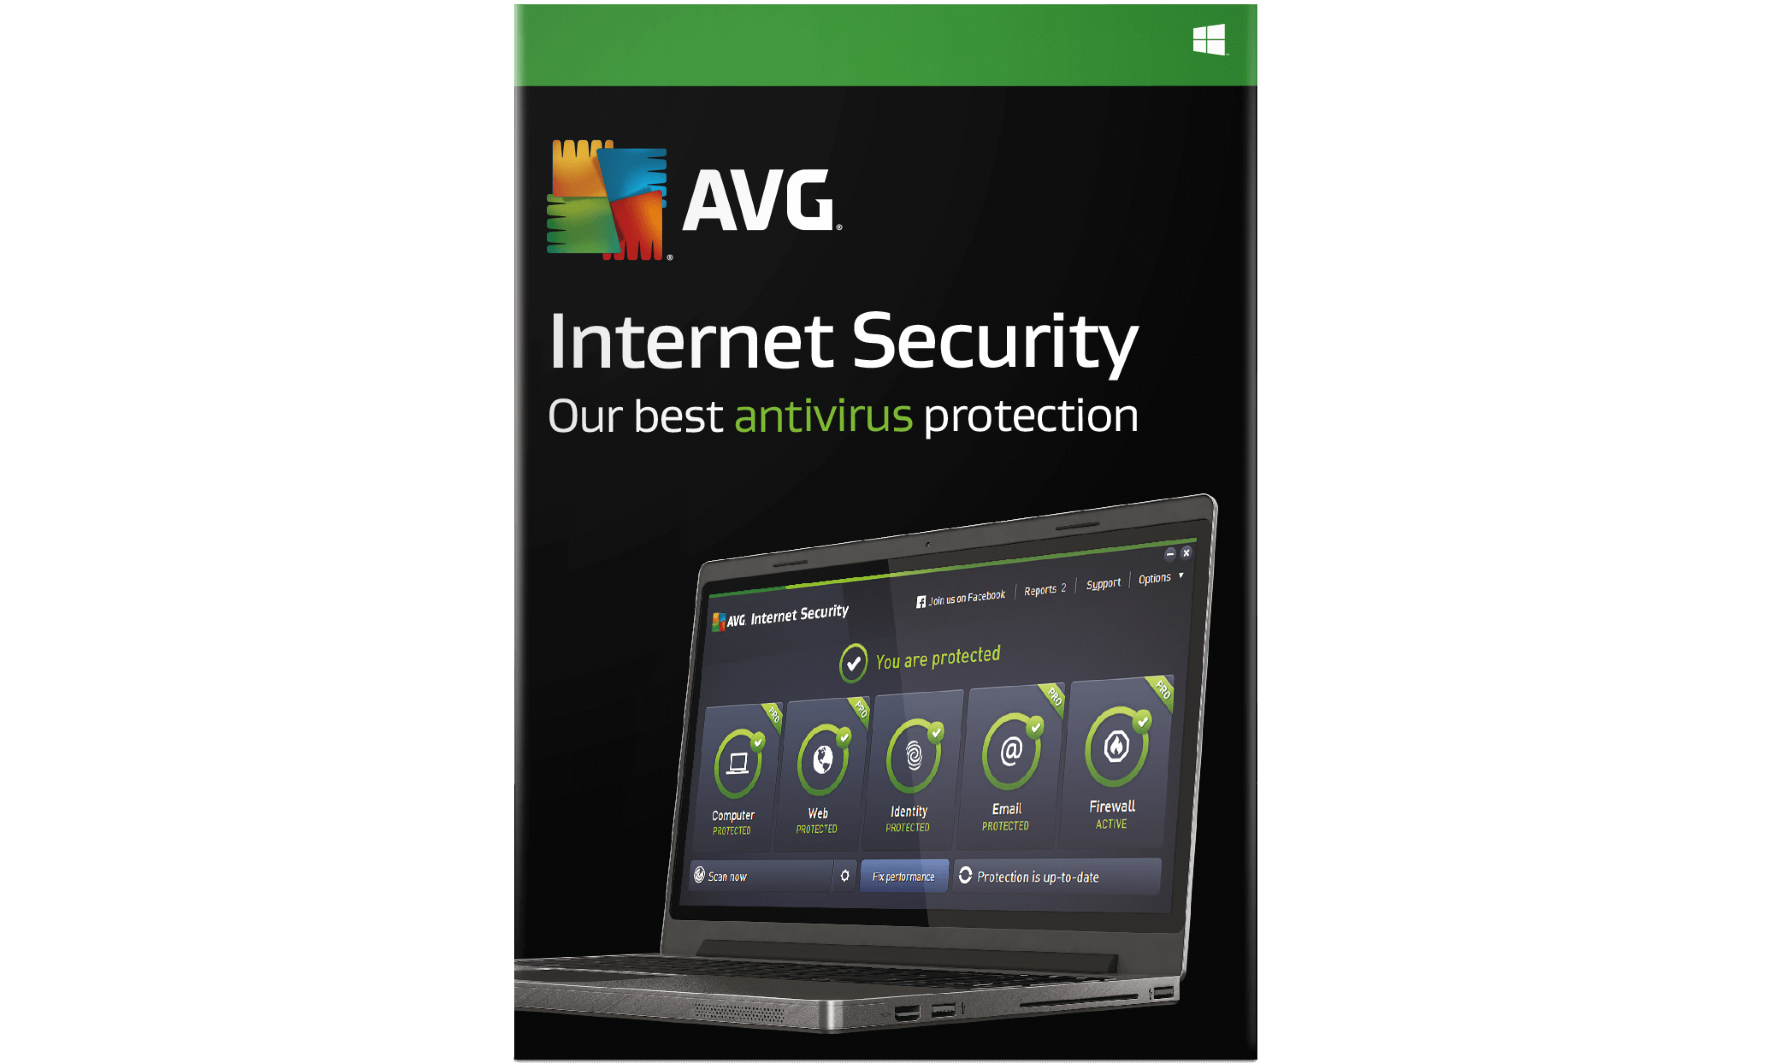 AVG Anti-Virus (AED 49) or Internet Security (AED 89) (Up to 82% Off)